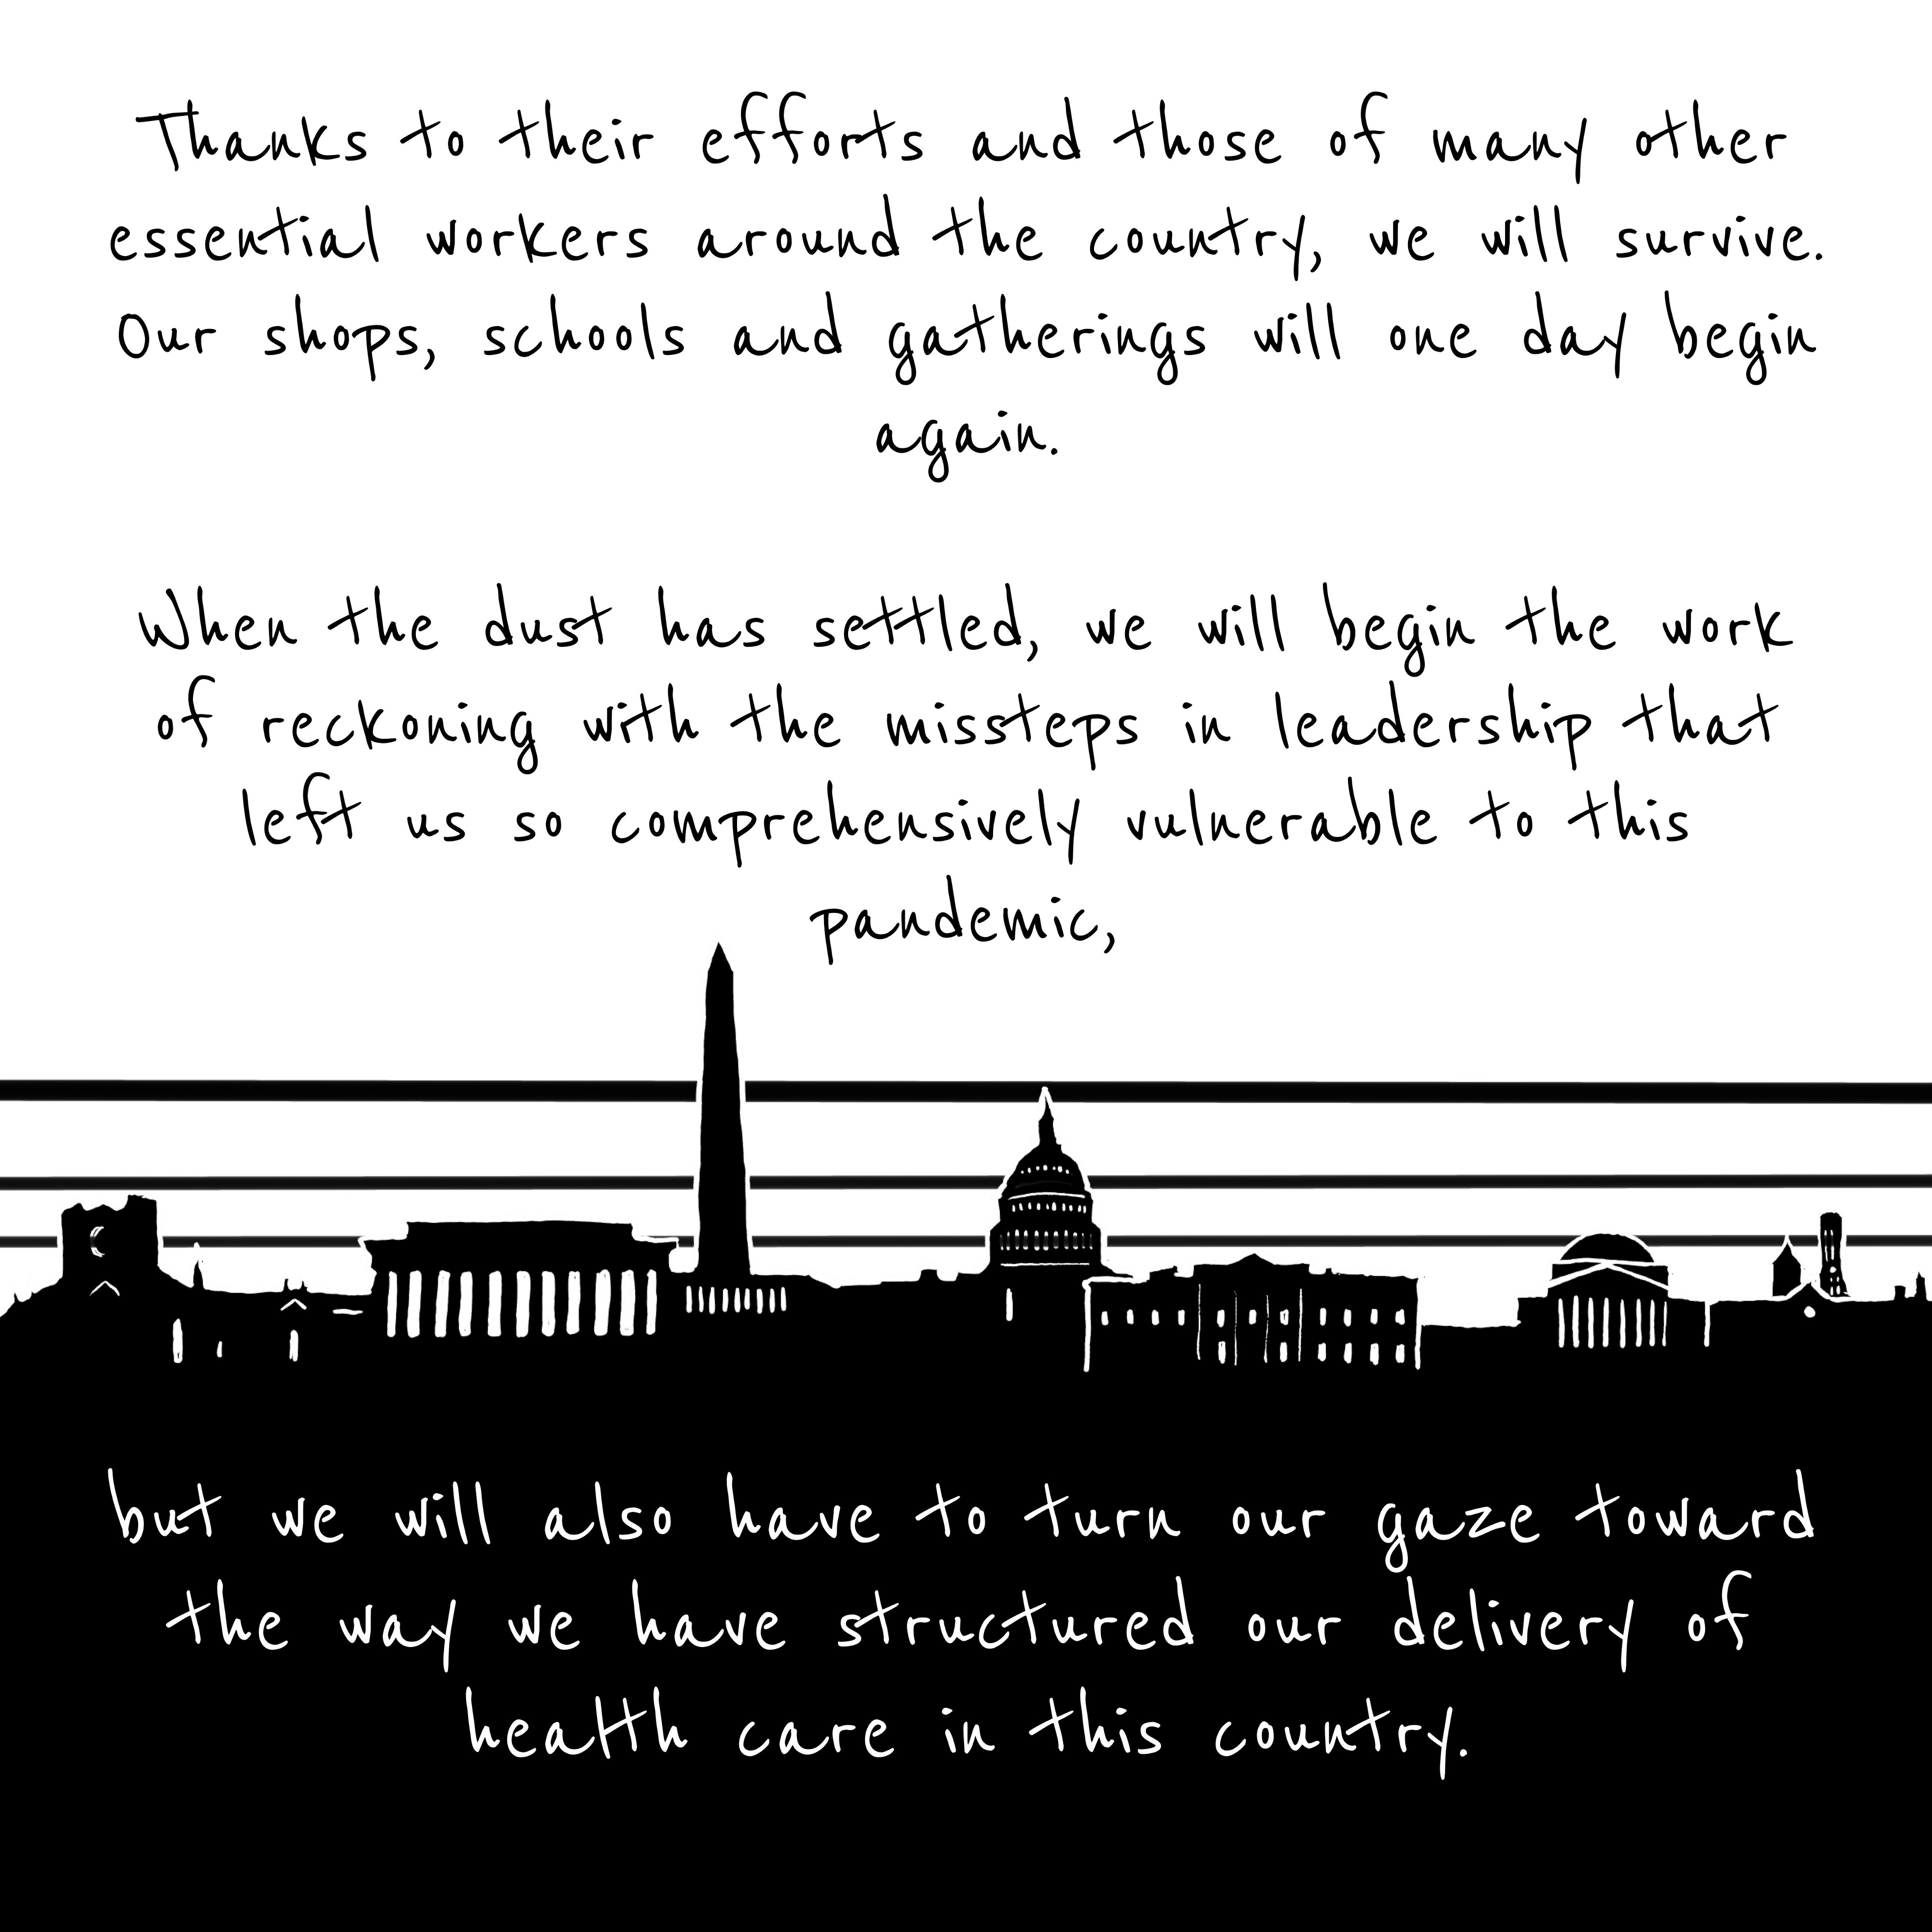 D.C. Skyline—When the dust has settled, we will have to reckon with the missteps that left us so vulnerable.